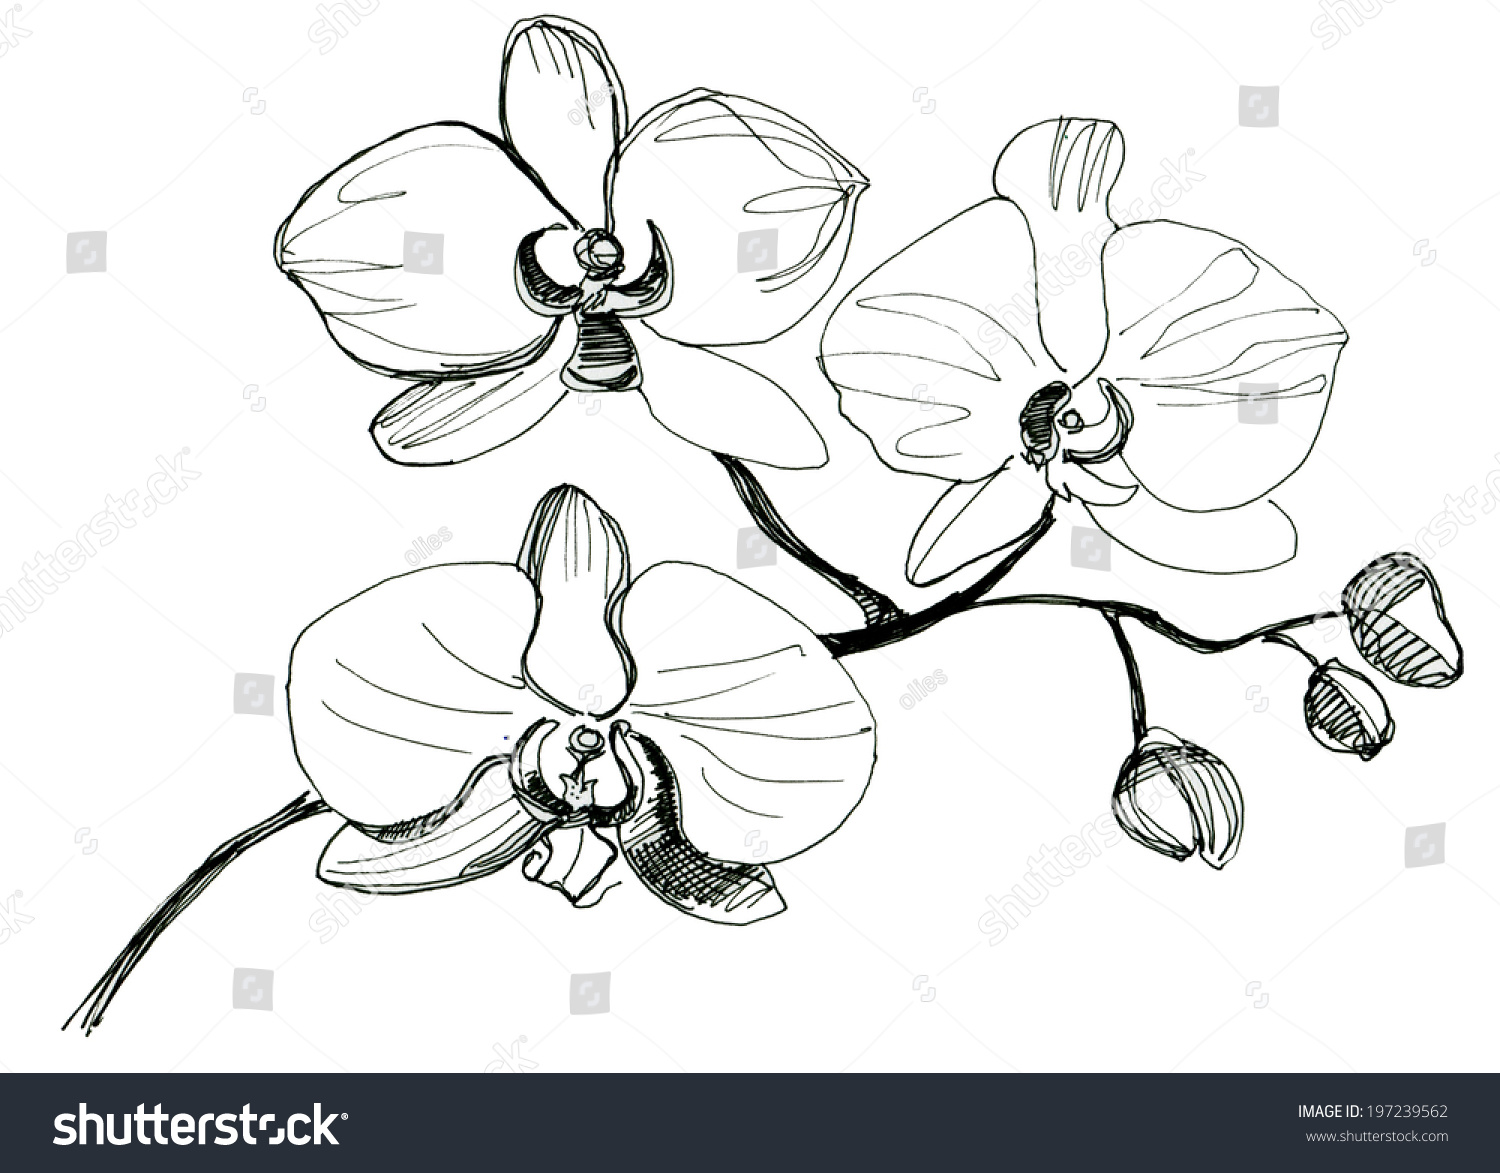 Orchid Flower Line Drawing : Hand drawing orchid flower sketch stock illustration